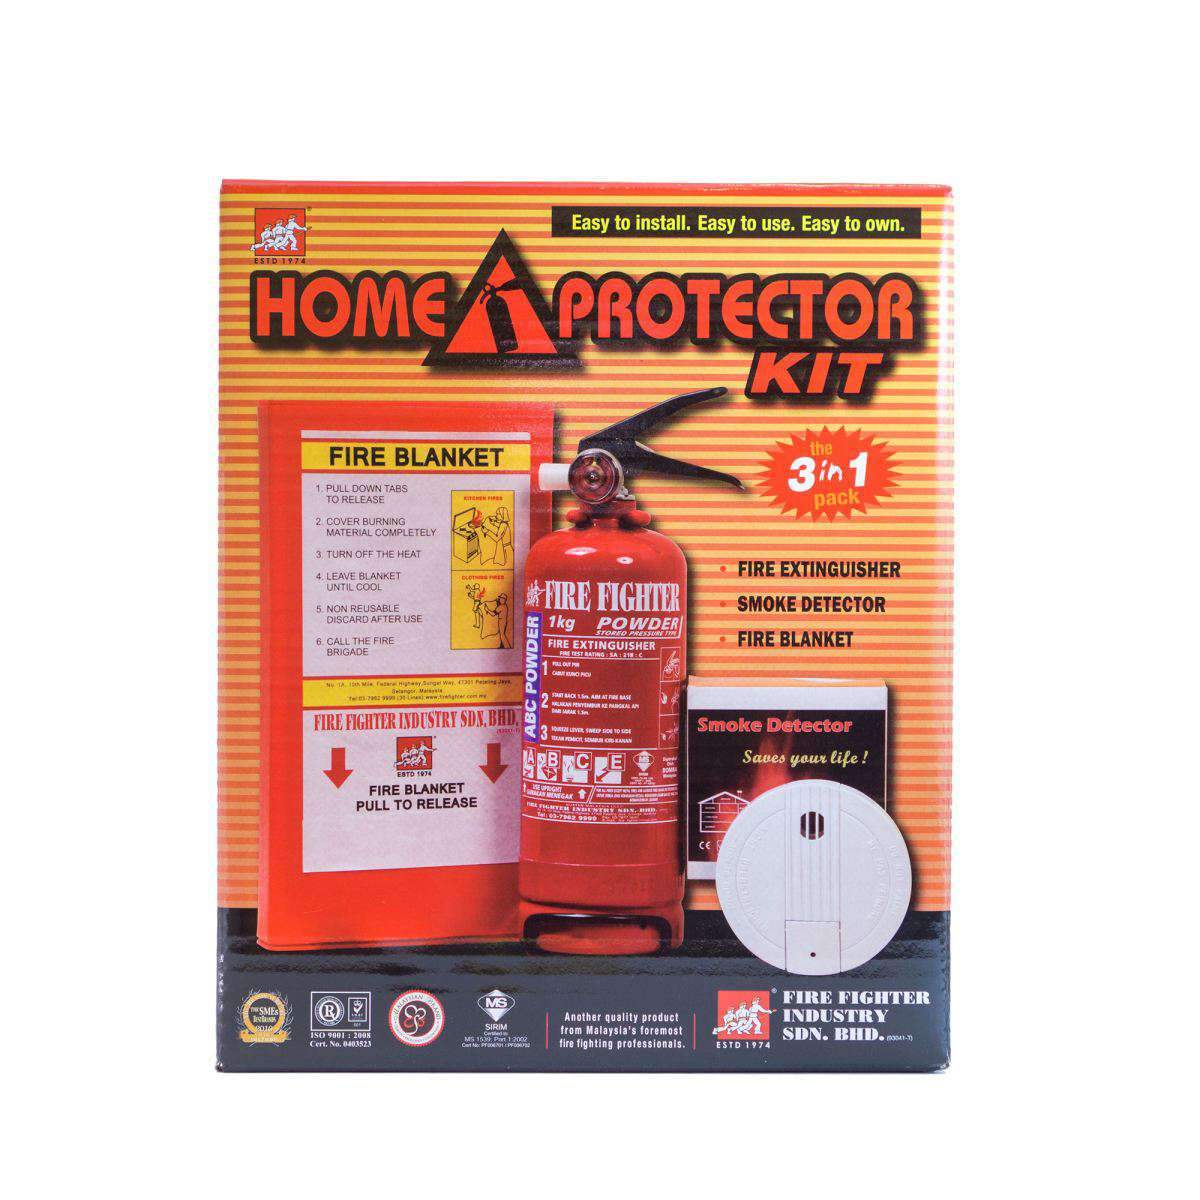 Home Protector Kit (RM255 value) Fire Fighter